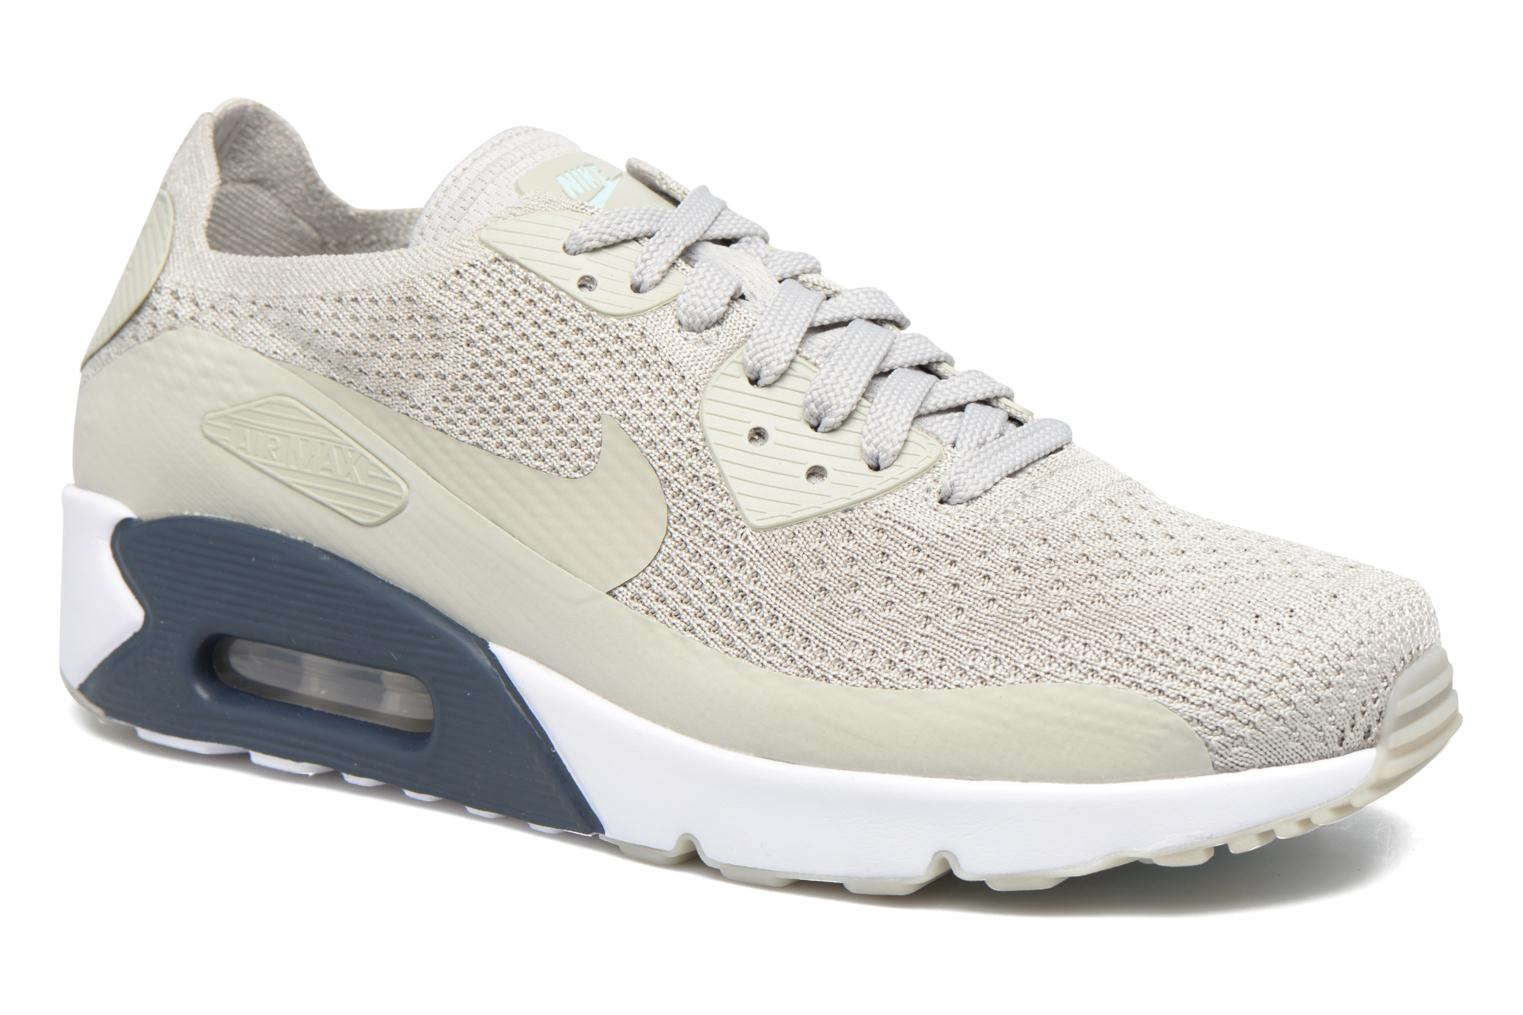 Air Max 90 Ultra 2.0 Flyknit Pale Grey/Pale Grey-Armory Navy